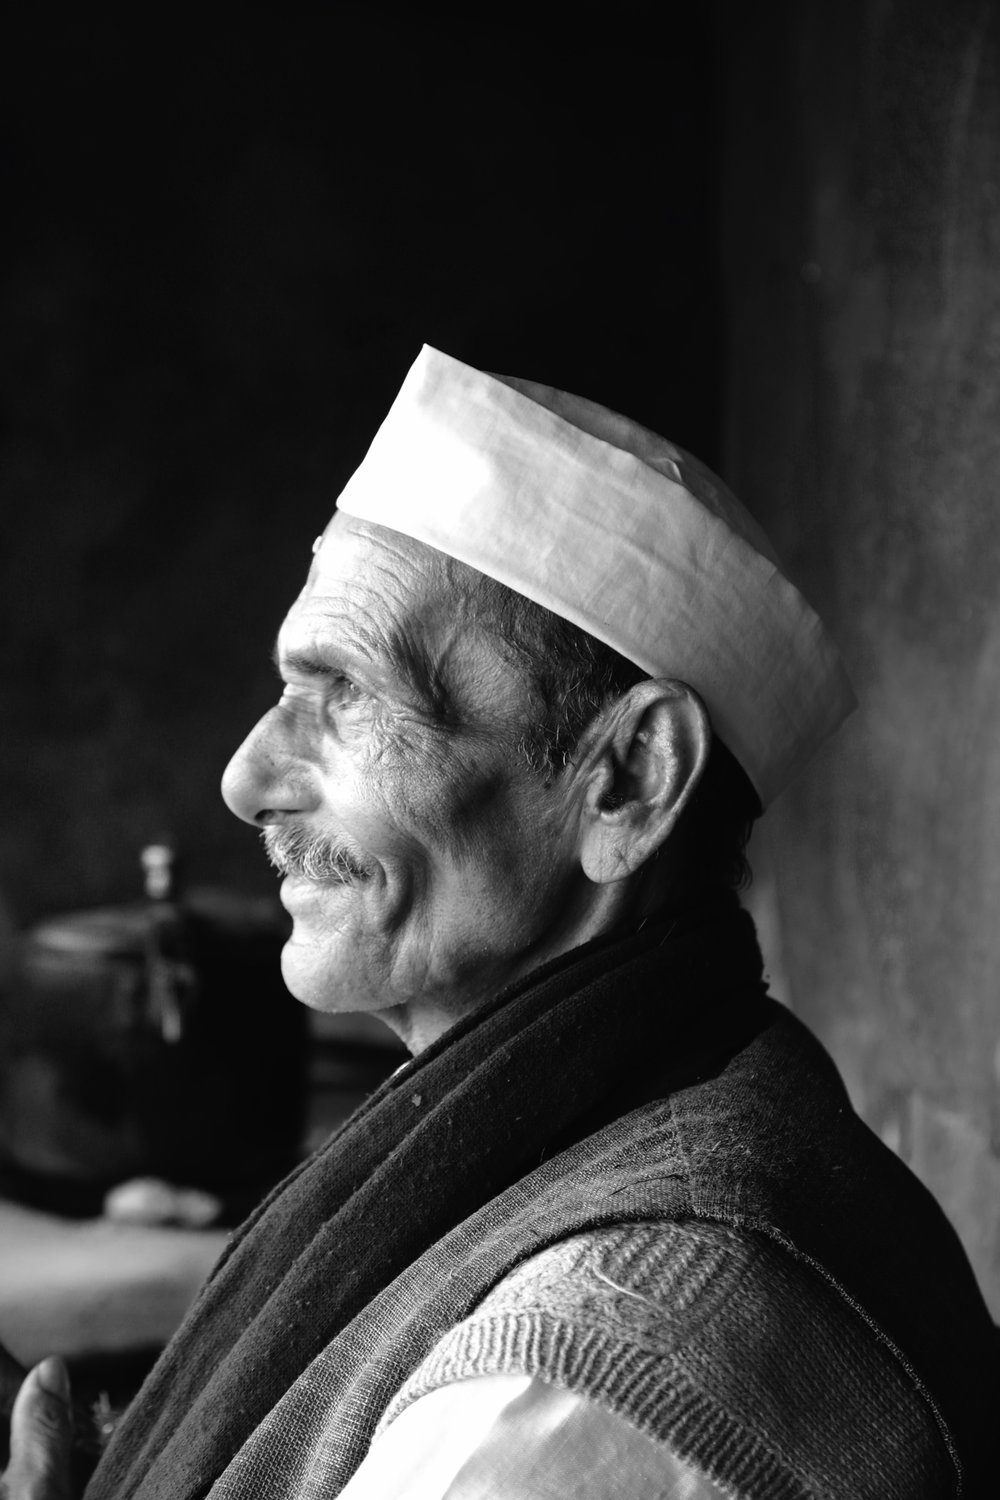 I told him he looked like Nehru, he liked that a lot, I got a free Chai!